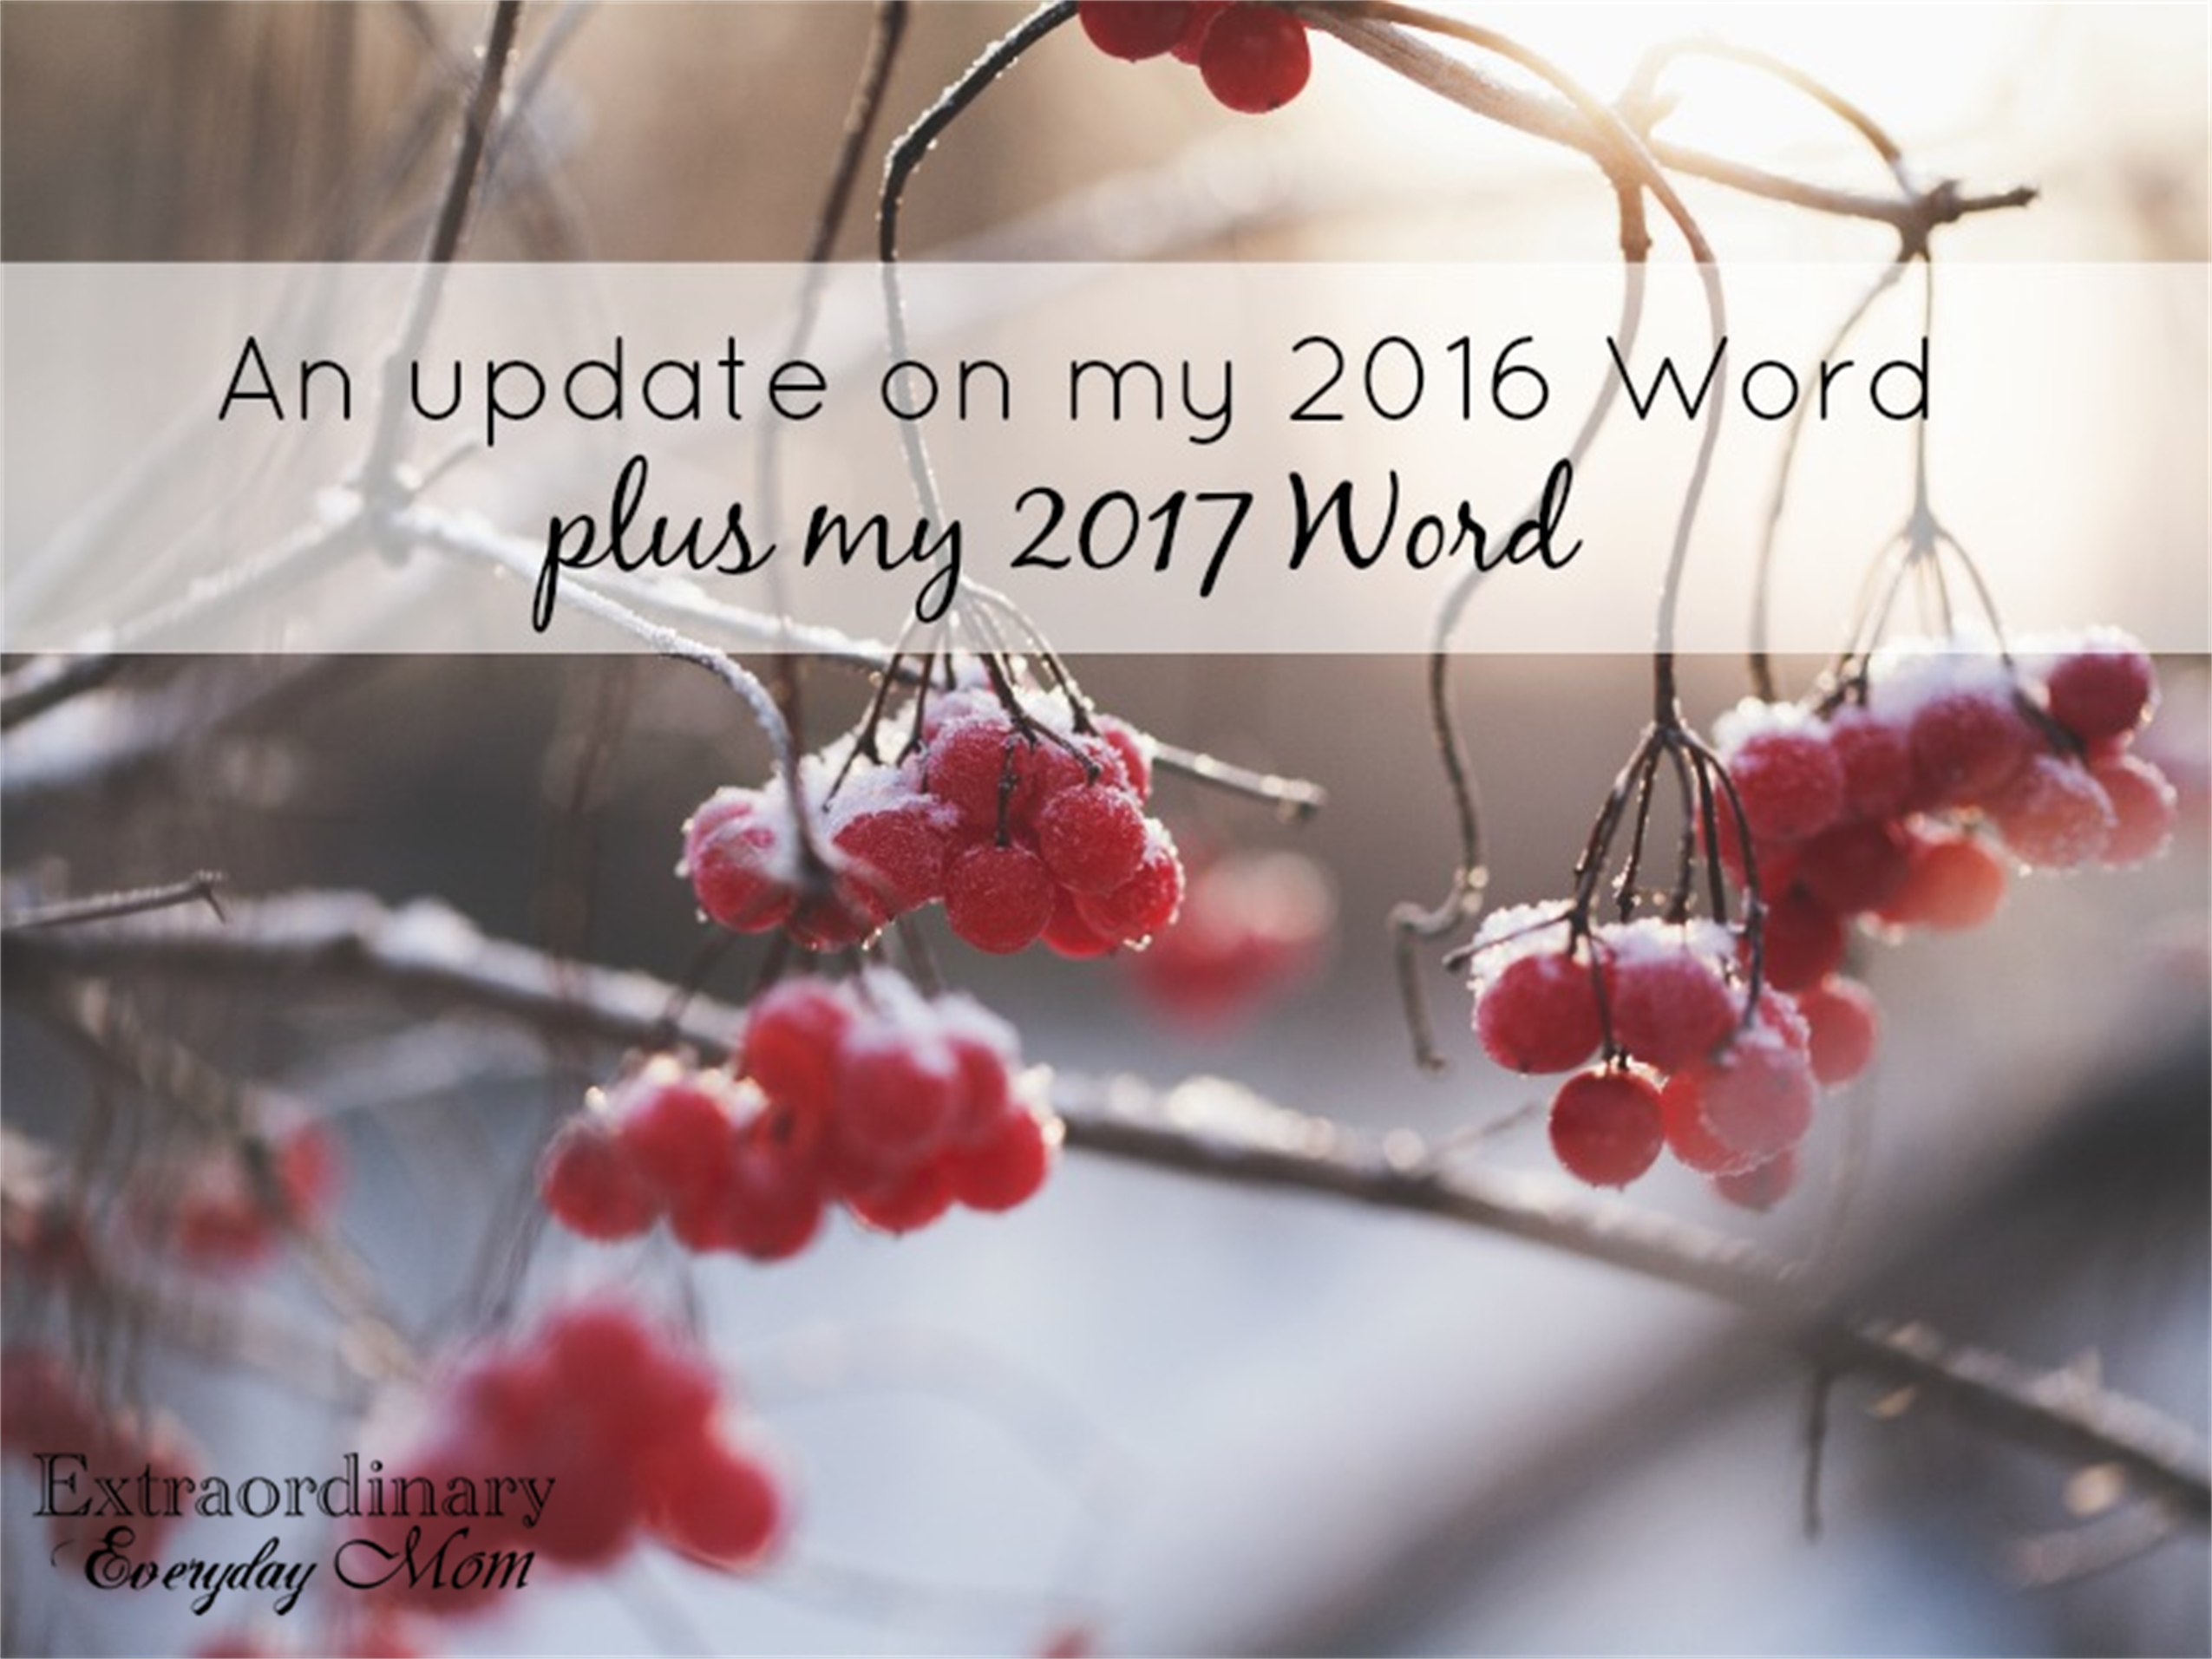 An update on my 2016 Word plus my 2017 Word